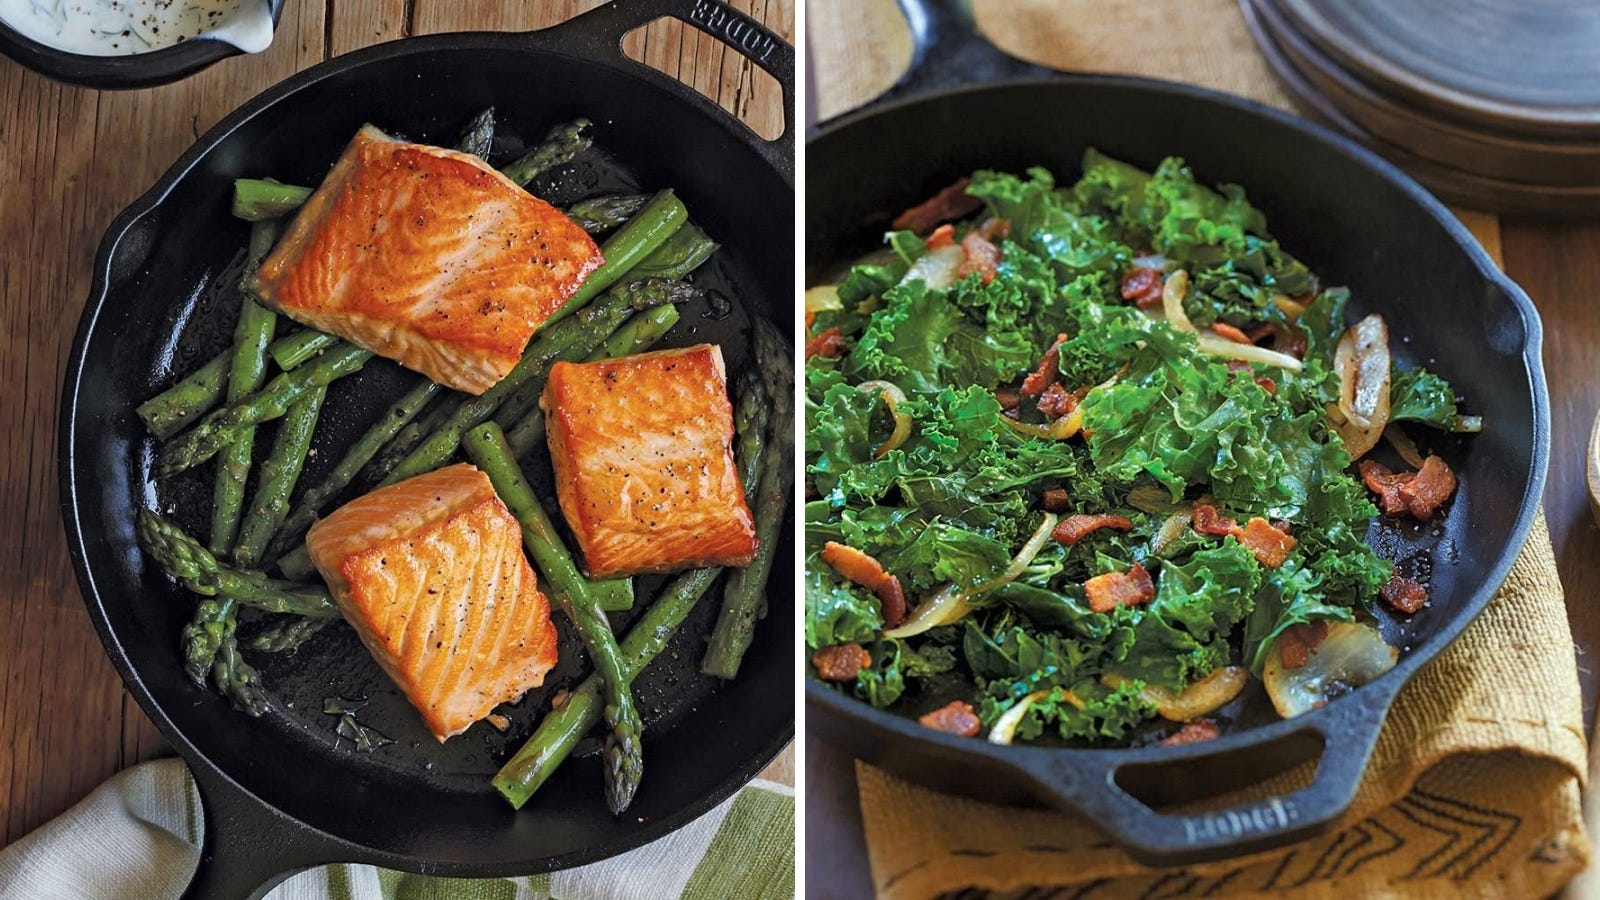 Two images featuring meals cooked in the Lodge cast iron skillet.